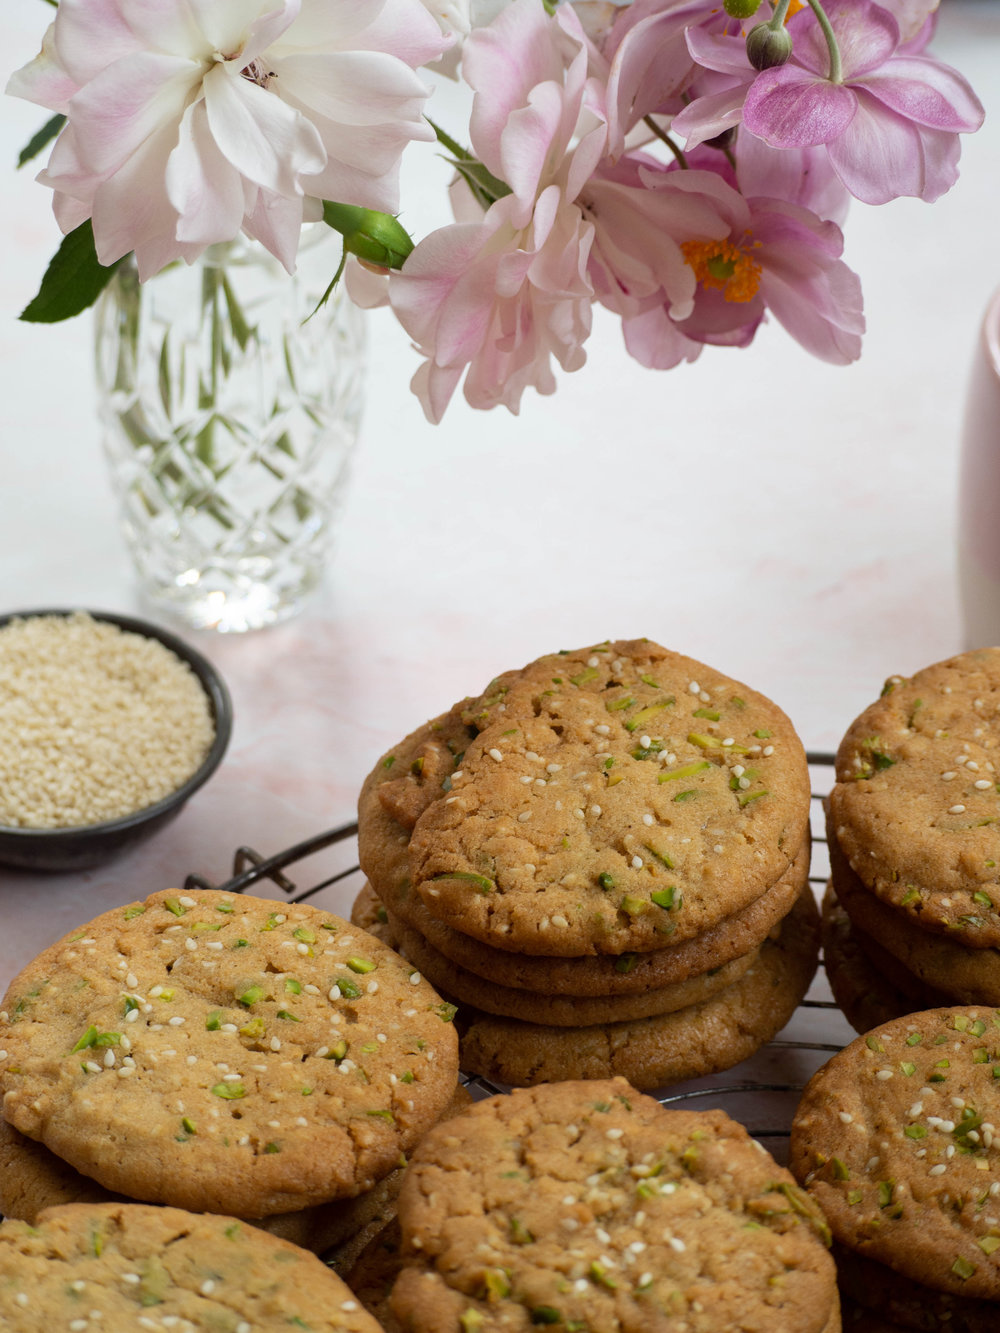 Sesame and Pistachio Cookies